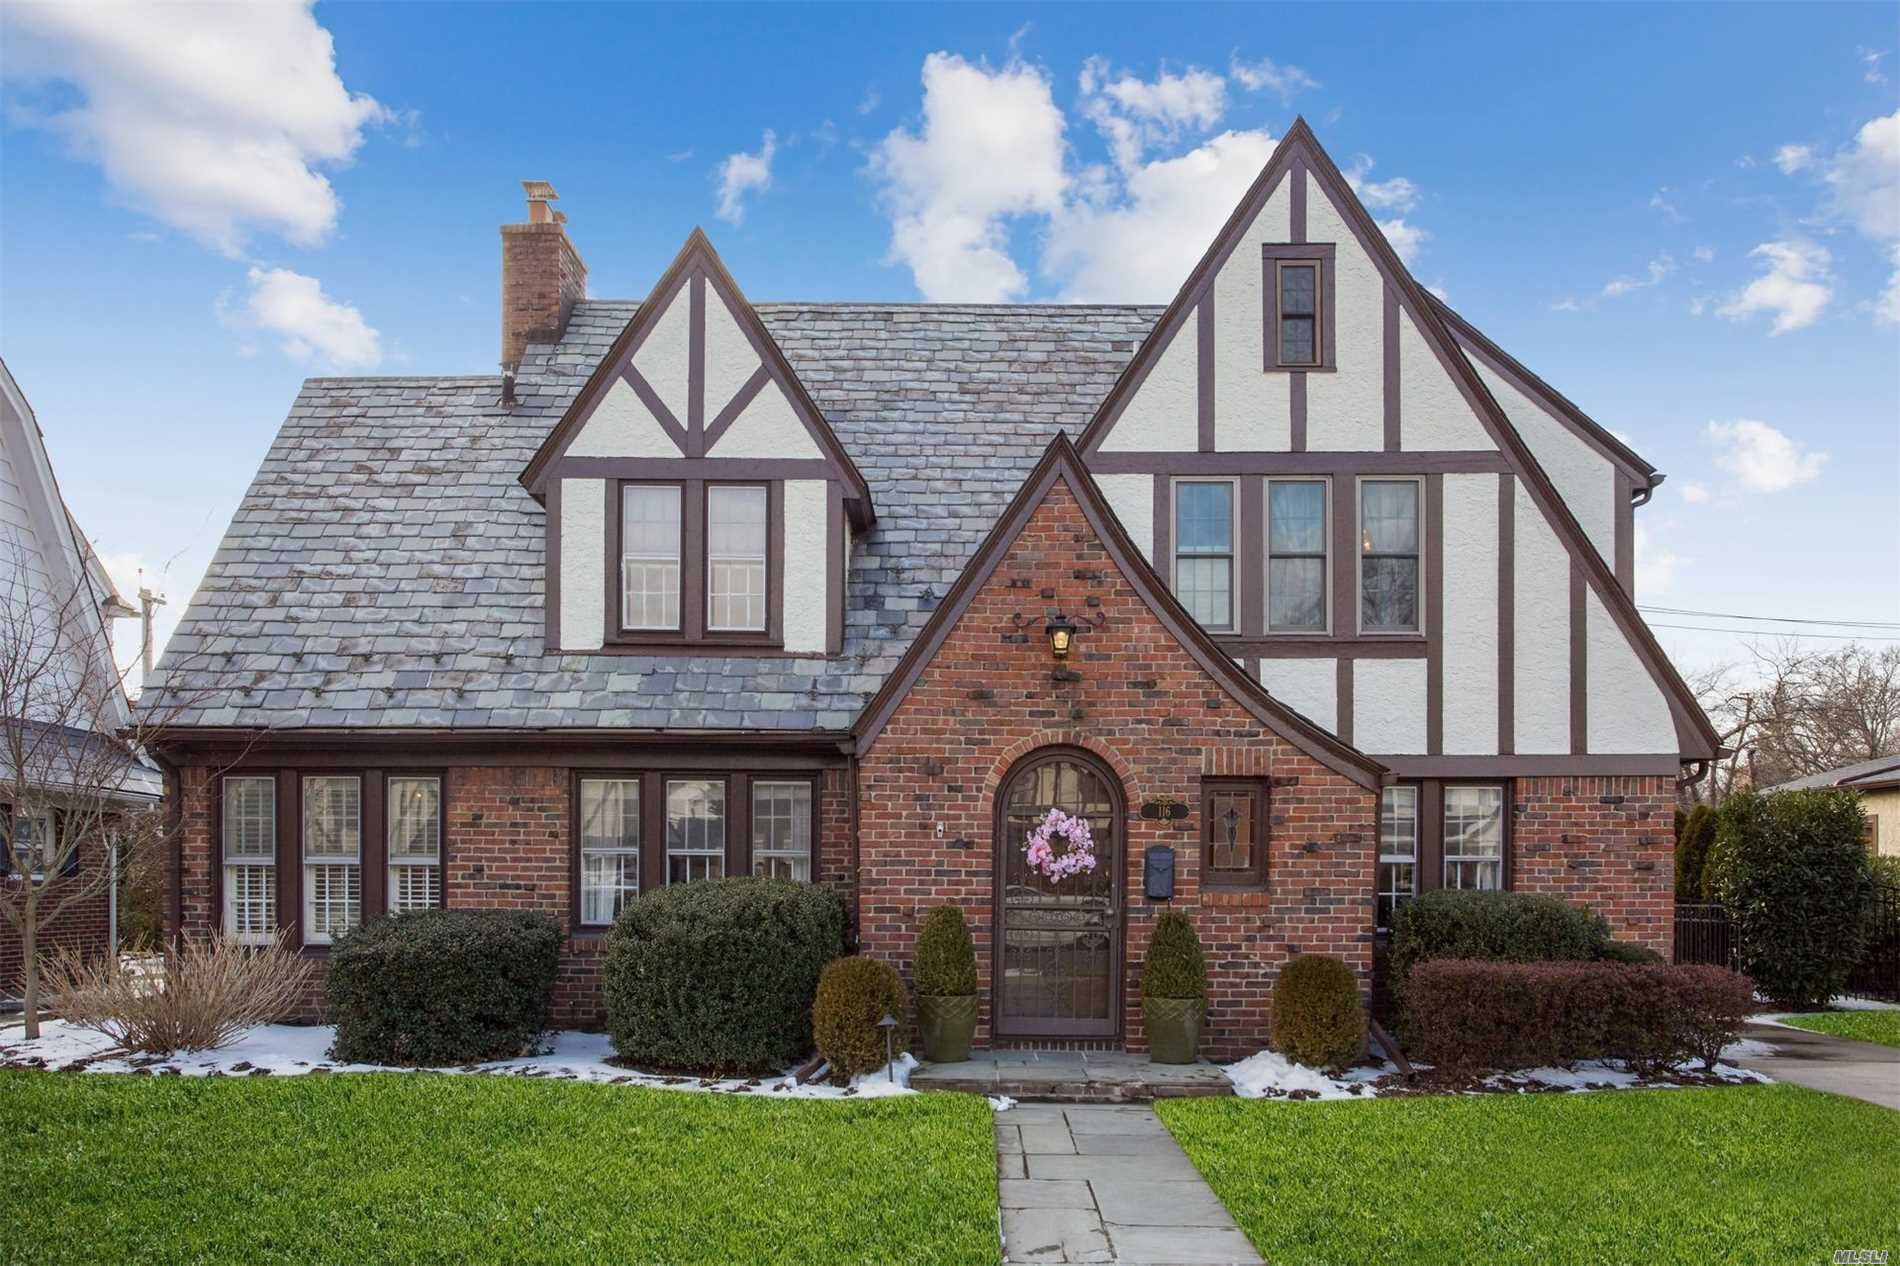 Classic Estates True Ch Brick Tudor W/Slate Roof Offers Great Curb Appeal, Layout, Architectural Interest And A Fabulous New White/Stainless/Caesarstone Quartz Cook's Kitchen With Island. Visual Connection To All Principal Rooms On The 1st Fl. Facing East, This Warm And Inviting House W/ Abundant Windows Is Sun-Drenched All Day. Mid-Block Location In A True Neighborhood Walkable To 3 Lirr Trains And Homestead And Stratford Schools.